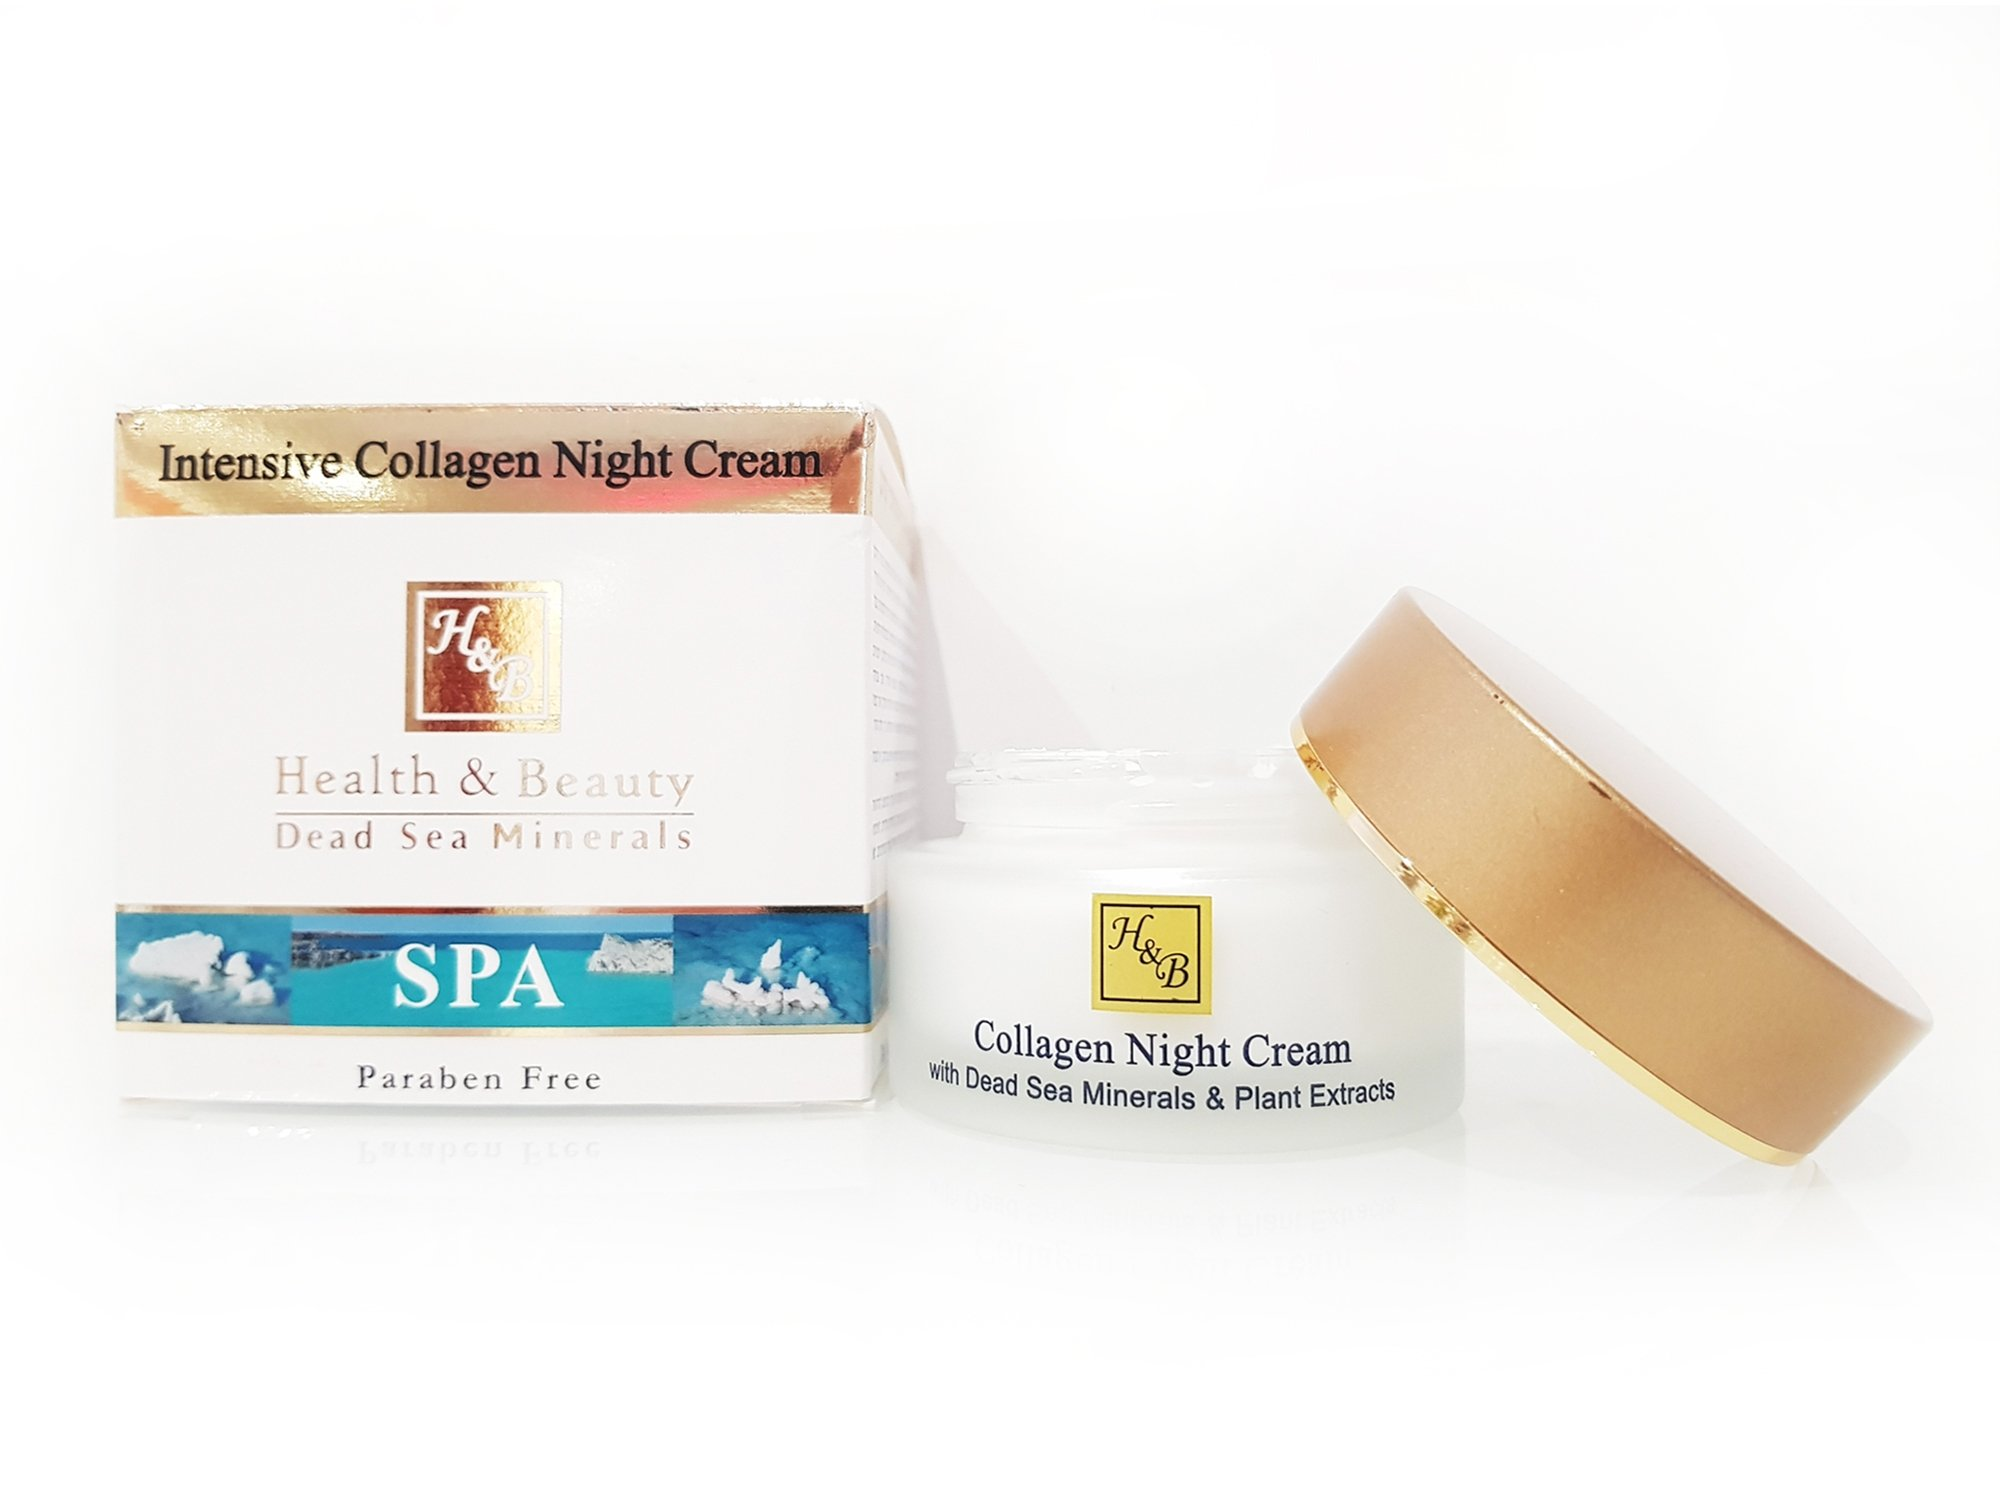 Dead Sea Cosmetics - Marelin Cosmetics - Intensive Collagen Night Cream